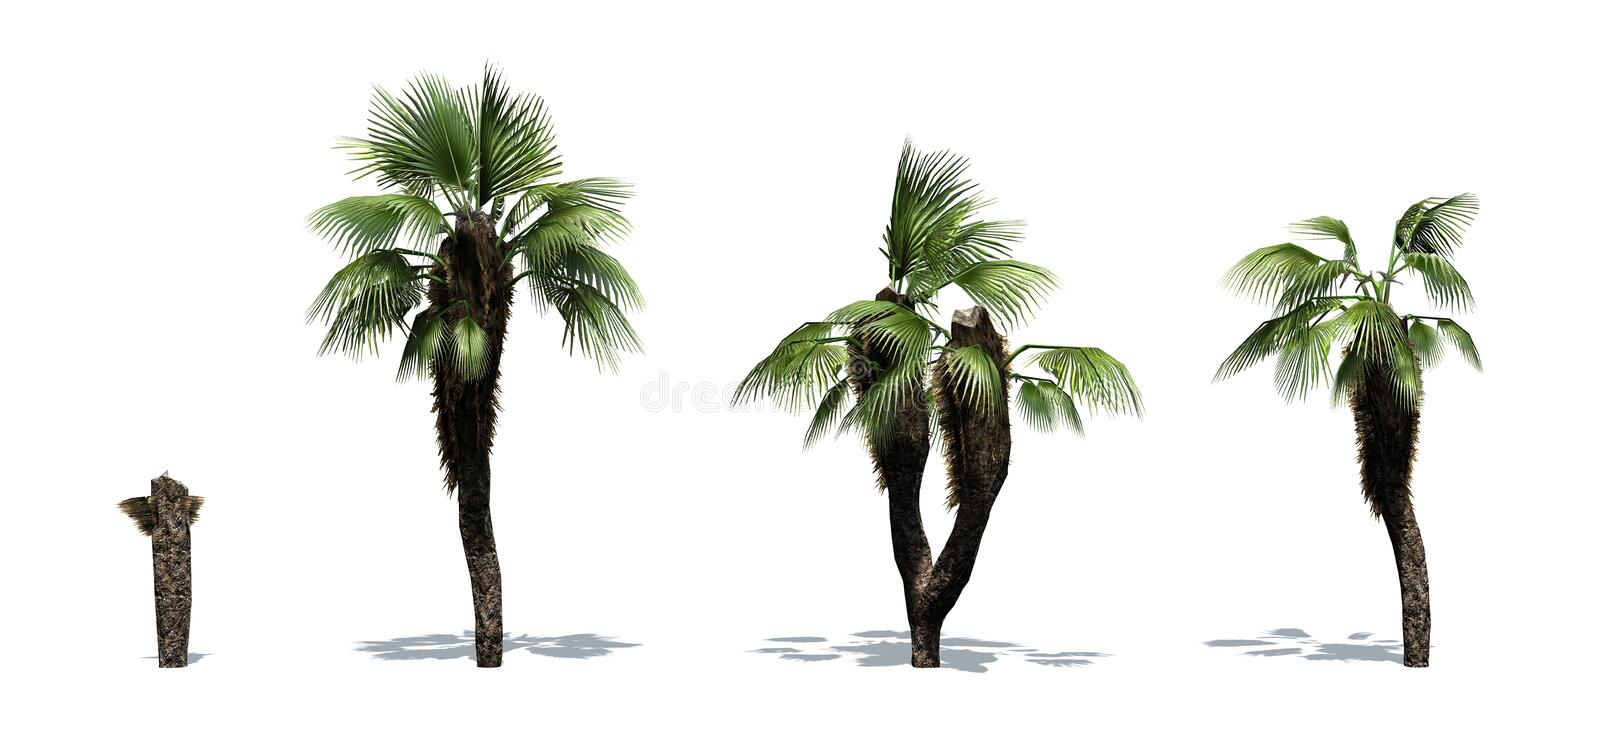 Set of Chinese Fan Palm trees with shadow on the floor. Isolated on white background royalty free illustration